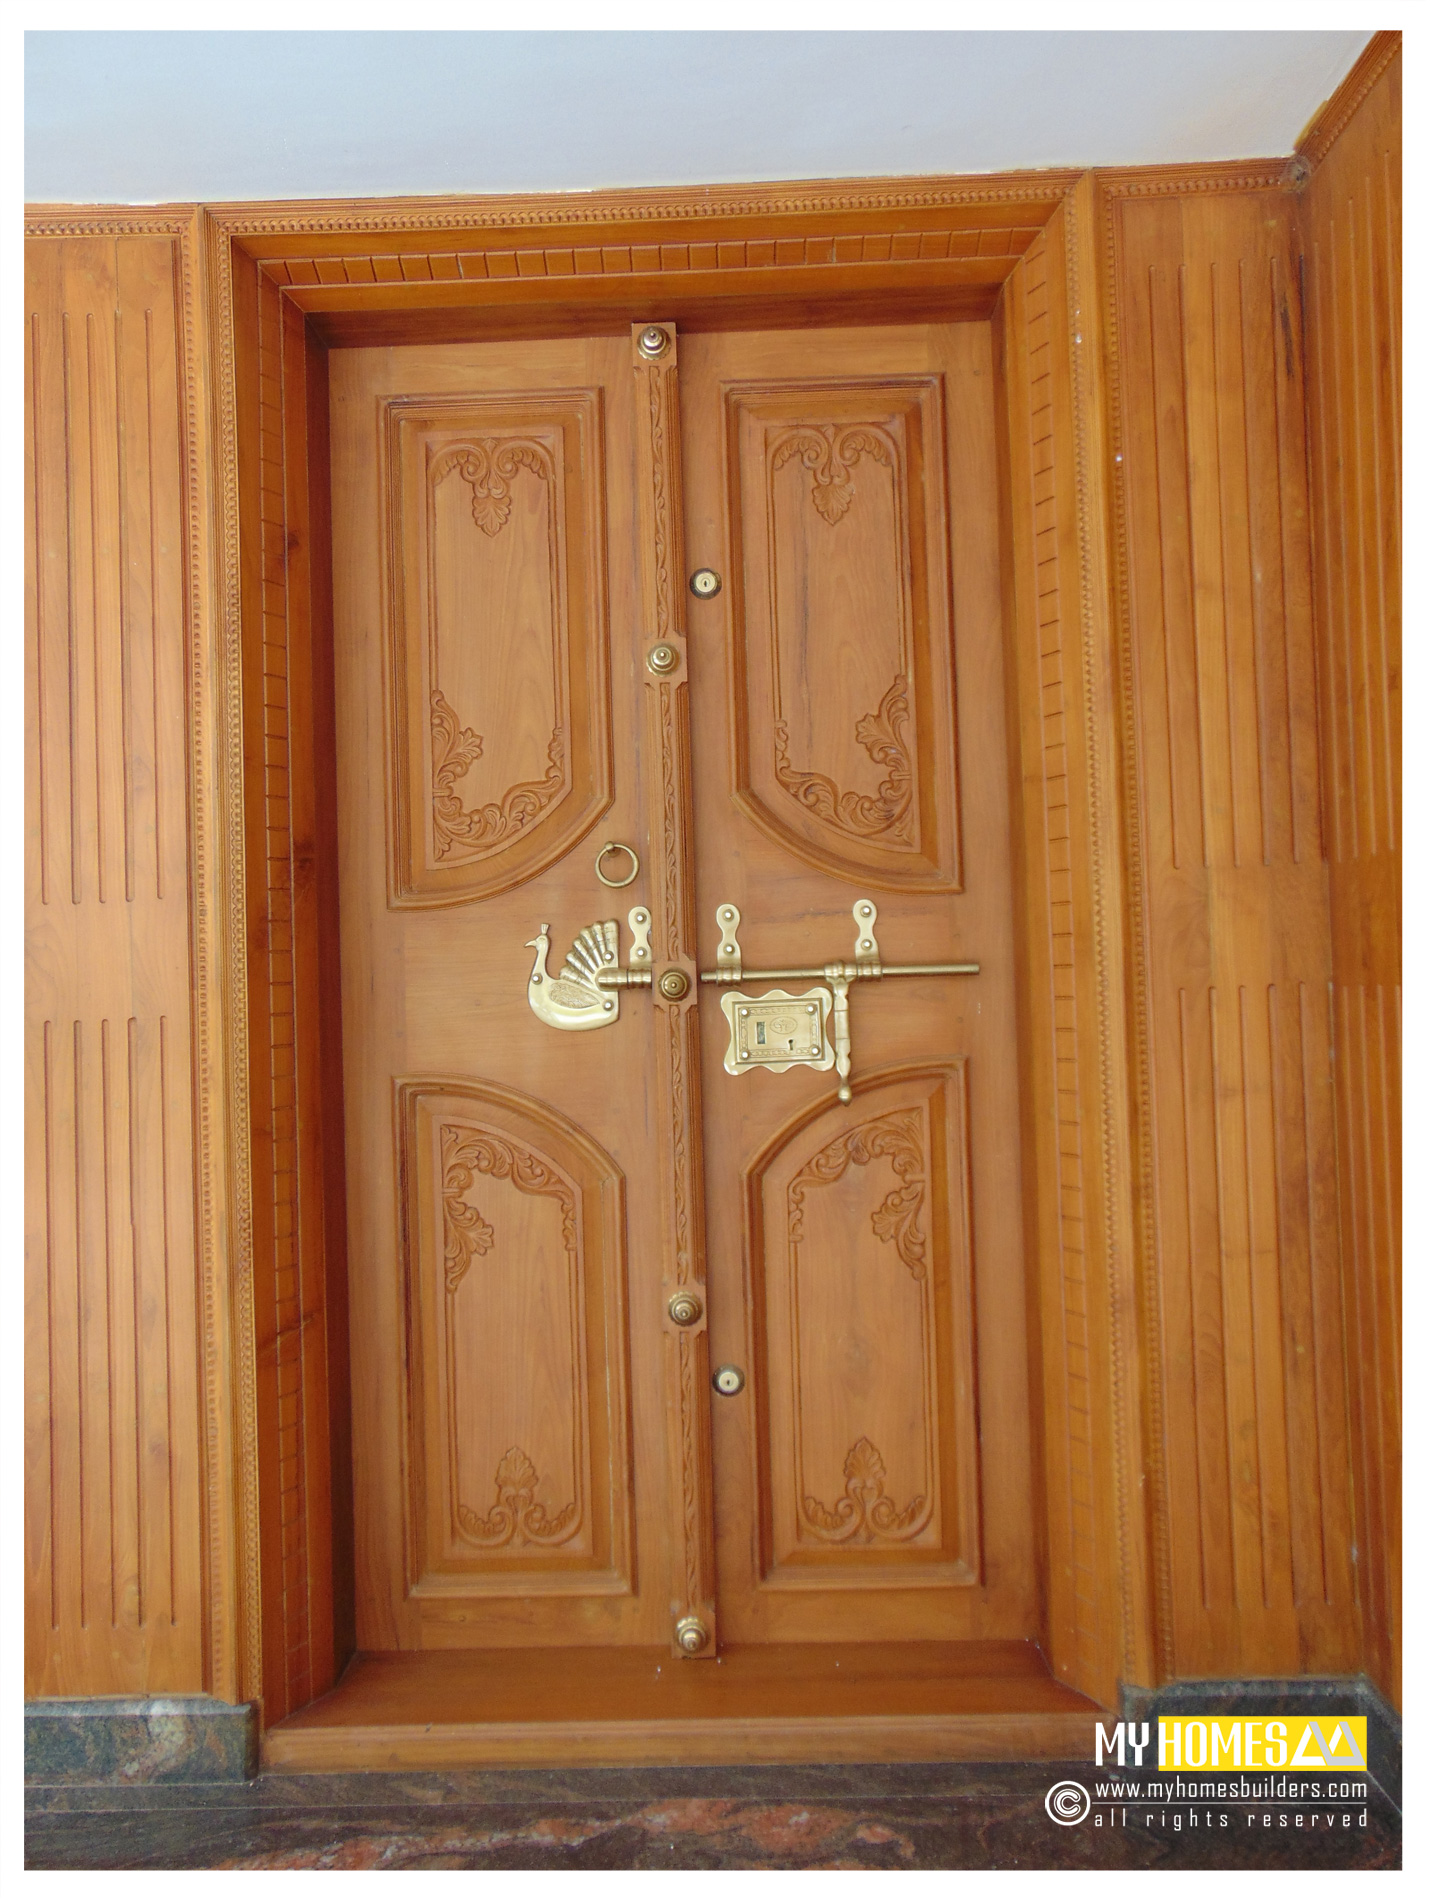 ... door designs, front door designs, kerala house door designs, main door